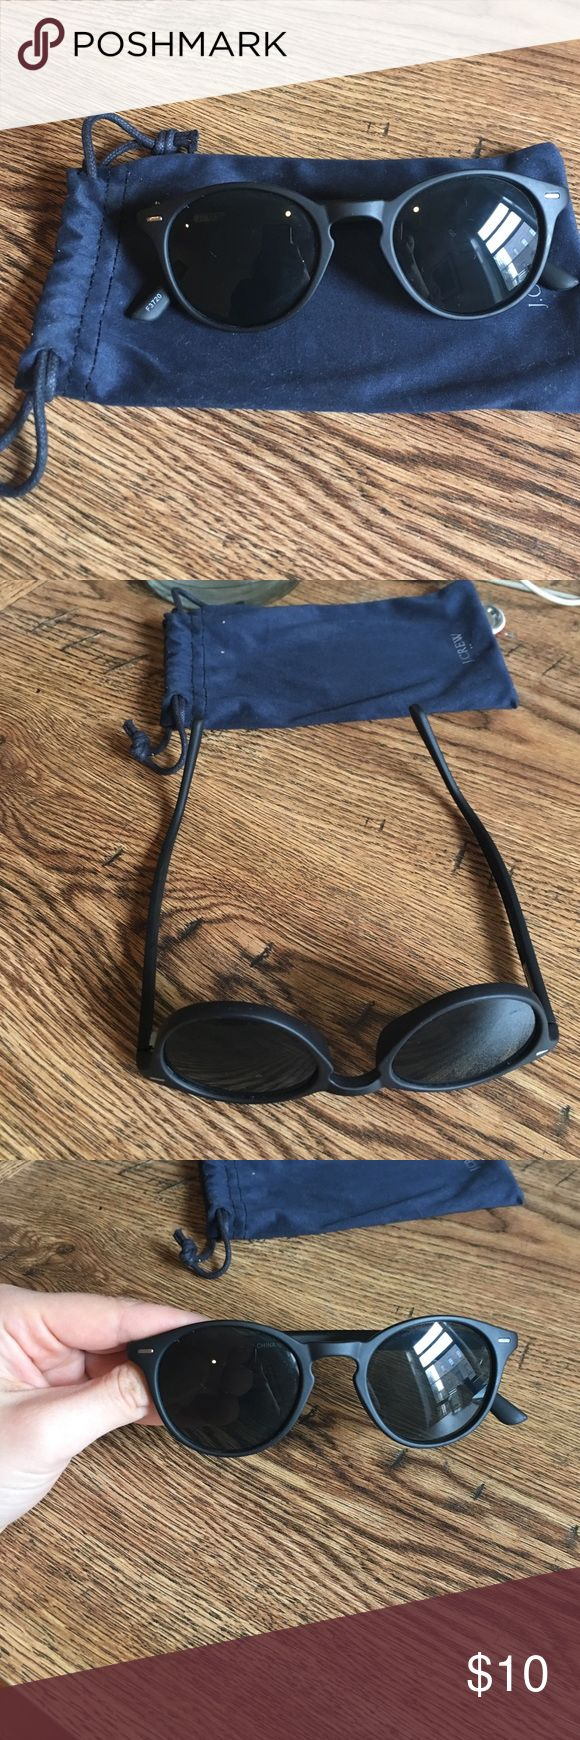 J crew sunglasses Small round frames from J crew outlet. Will ship in a hard case (not from J Crew) and send with j crew glasses pouch. Matte frame. No scratches. Purchased in September 2016. J. Crew Factory Other